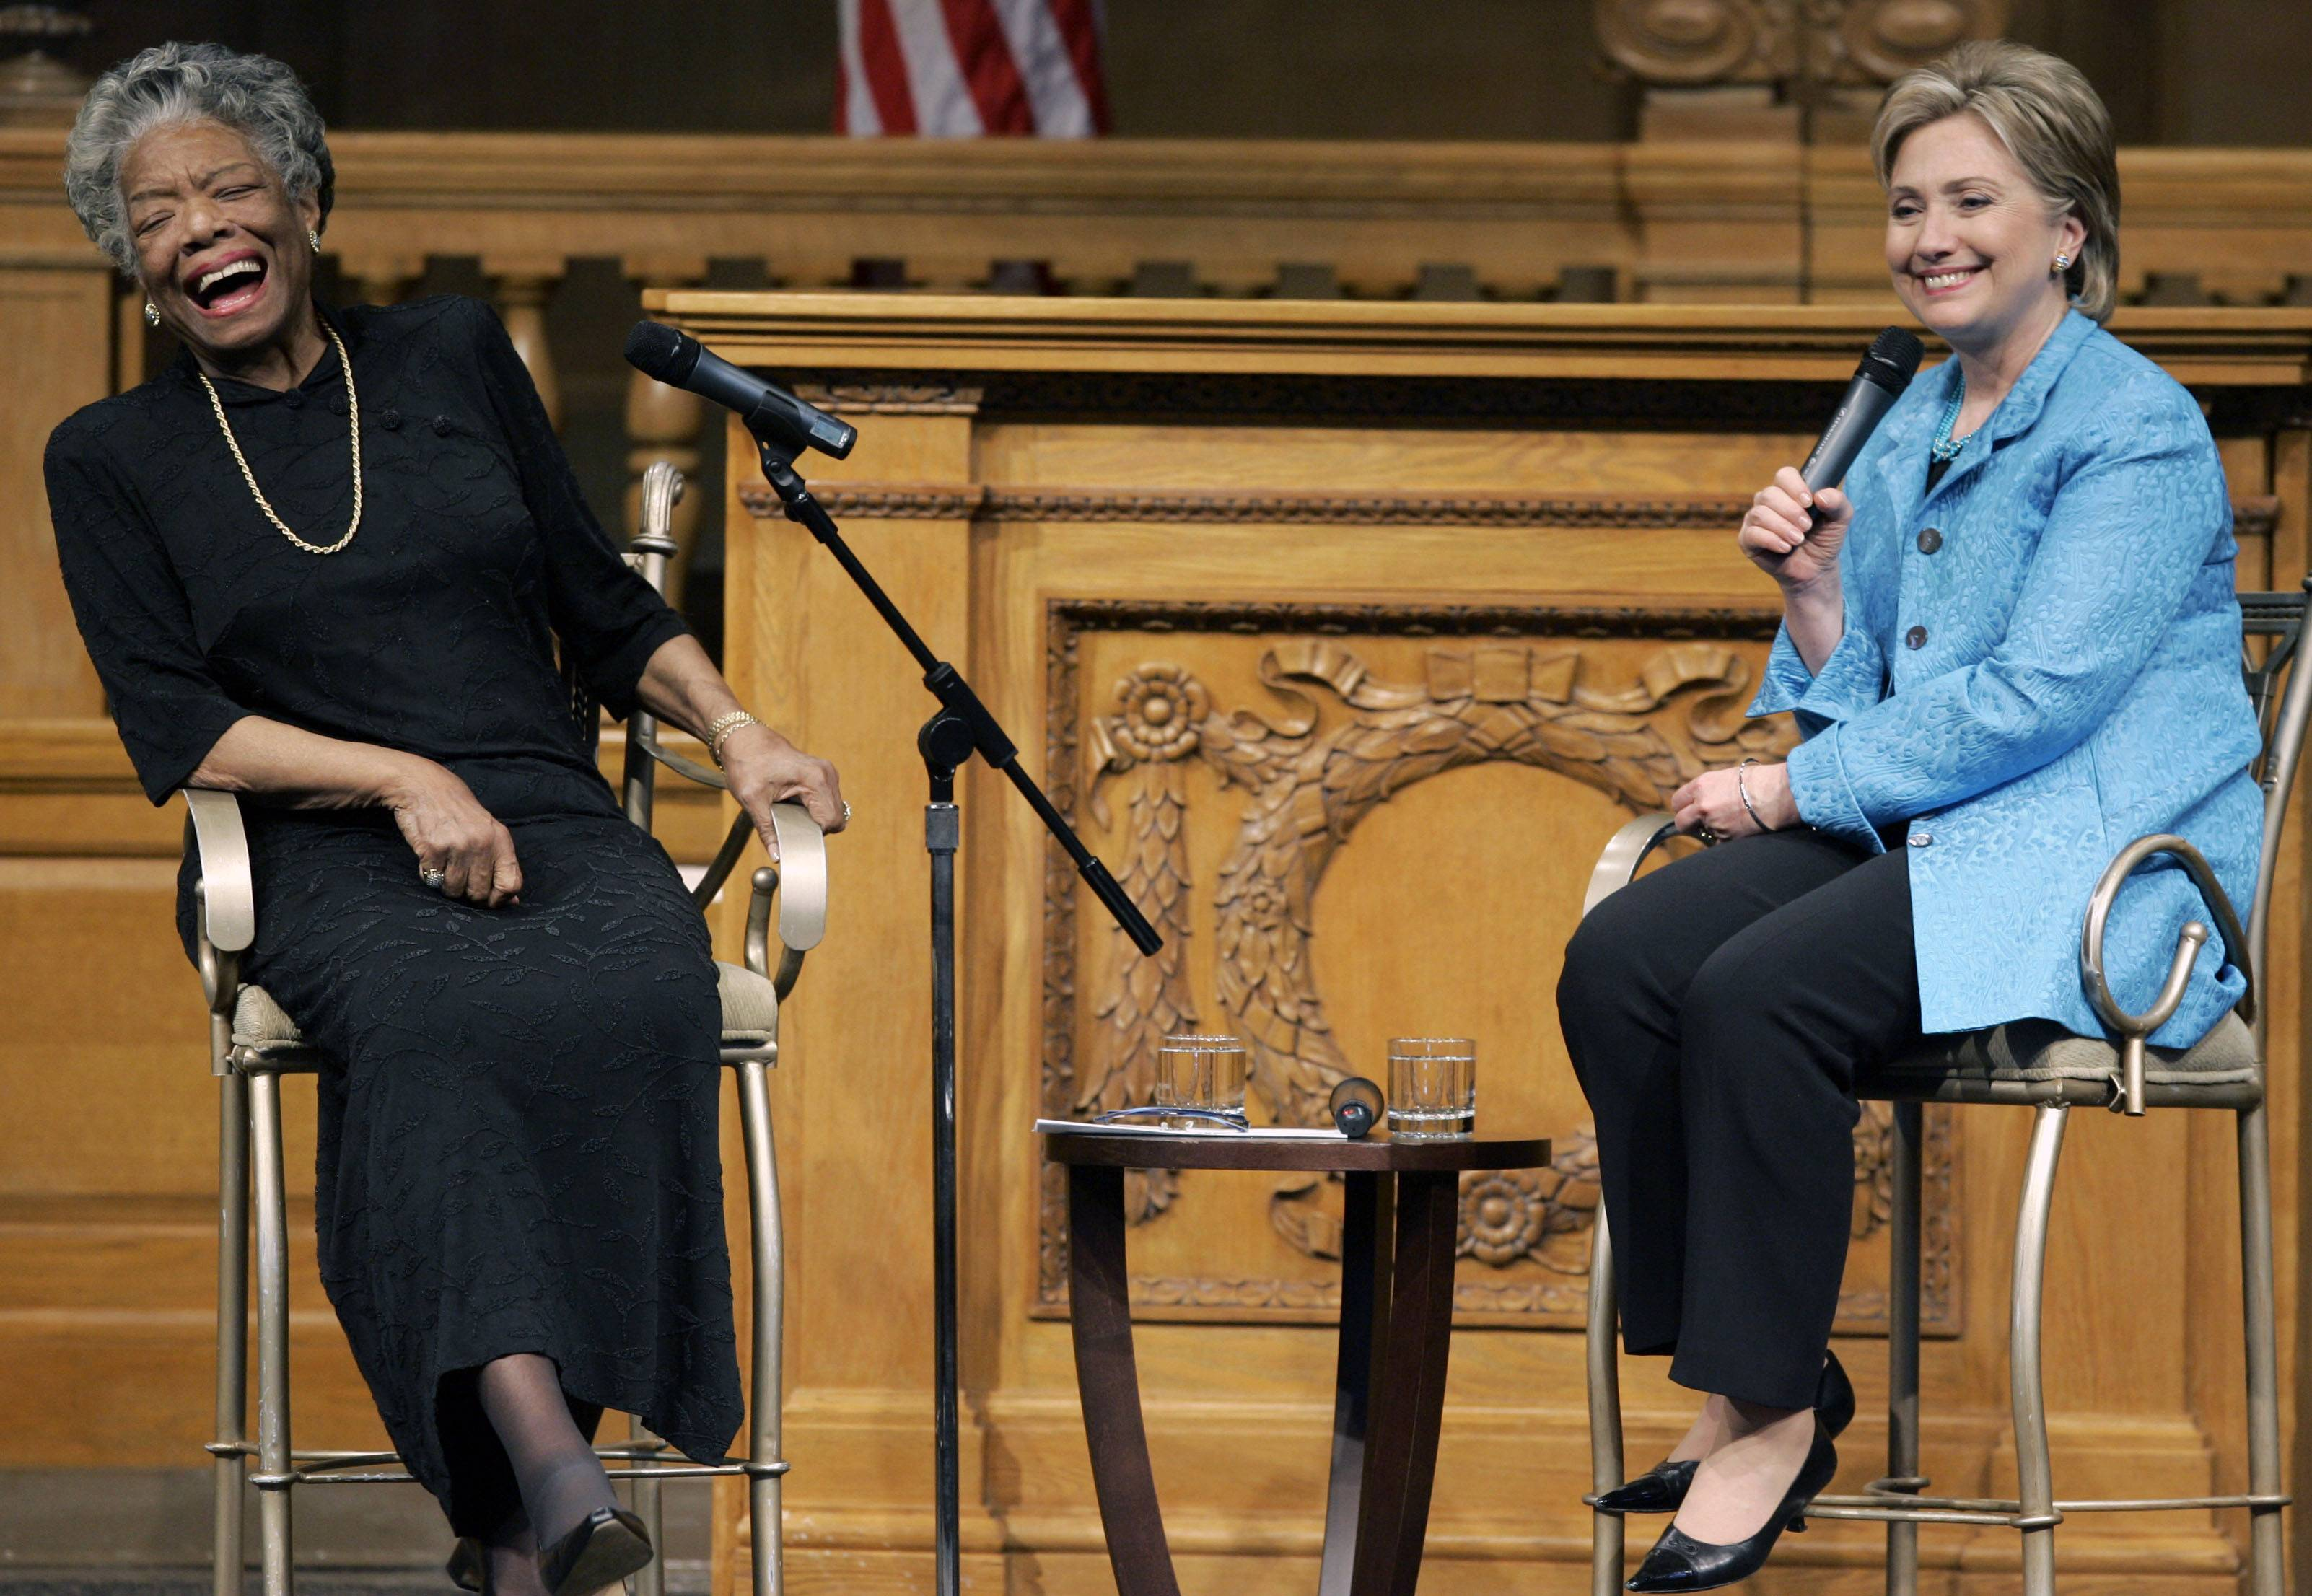 In this April 18, 2008 file photo, then U.S. Sen. Hillary Rodham Clinton, D-N.Y., right, speaks as poet Maya Angelou reacts during a campaign stop at Wake Forest University in Winston-Salem, N.C. Angelou, who rose from poverty, segregation and violence to become a force onstage, screen and the printed page, has died, Wake Forest University said Wednesday, May 28, 2014. She was 86.